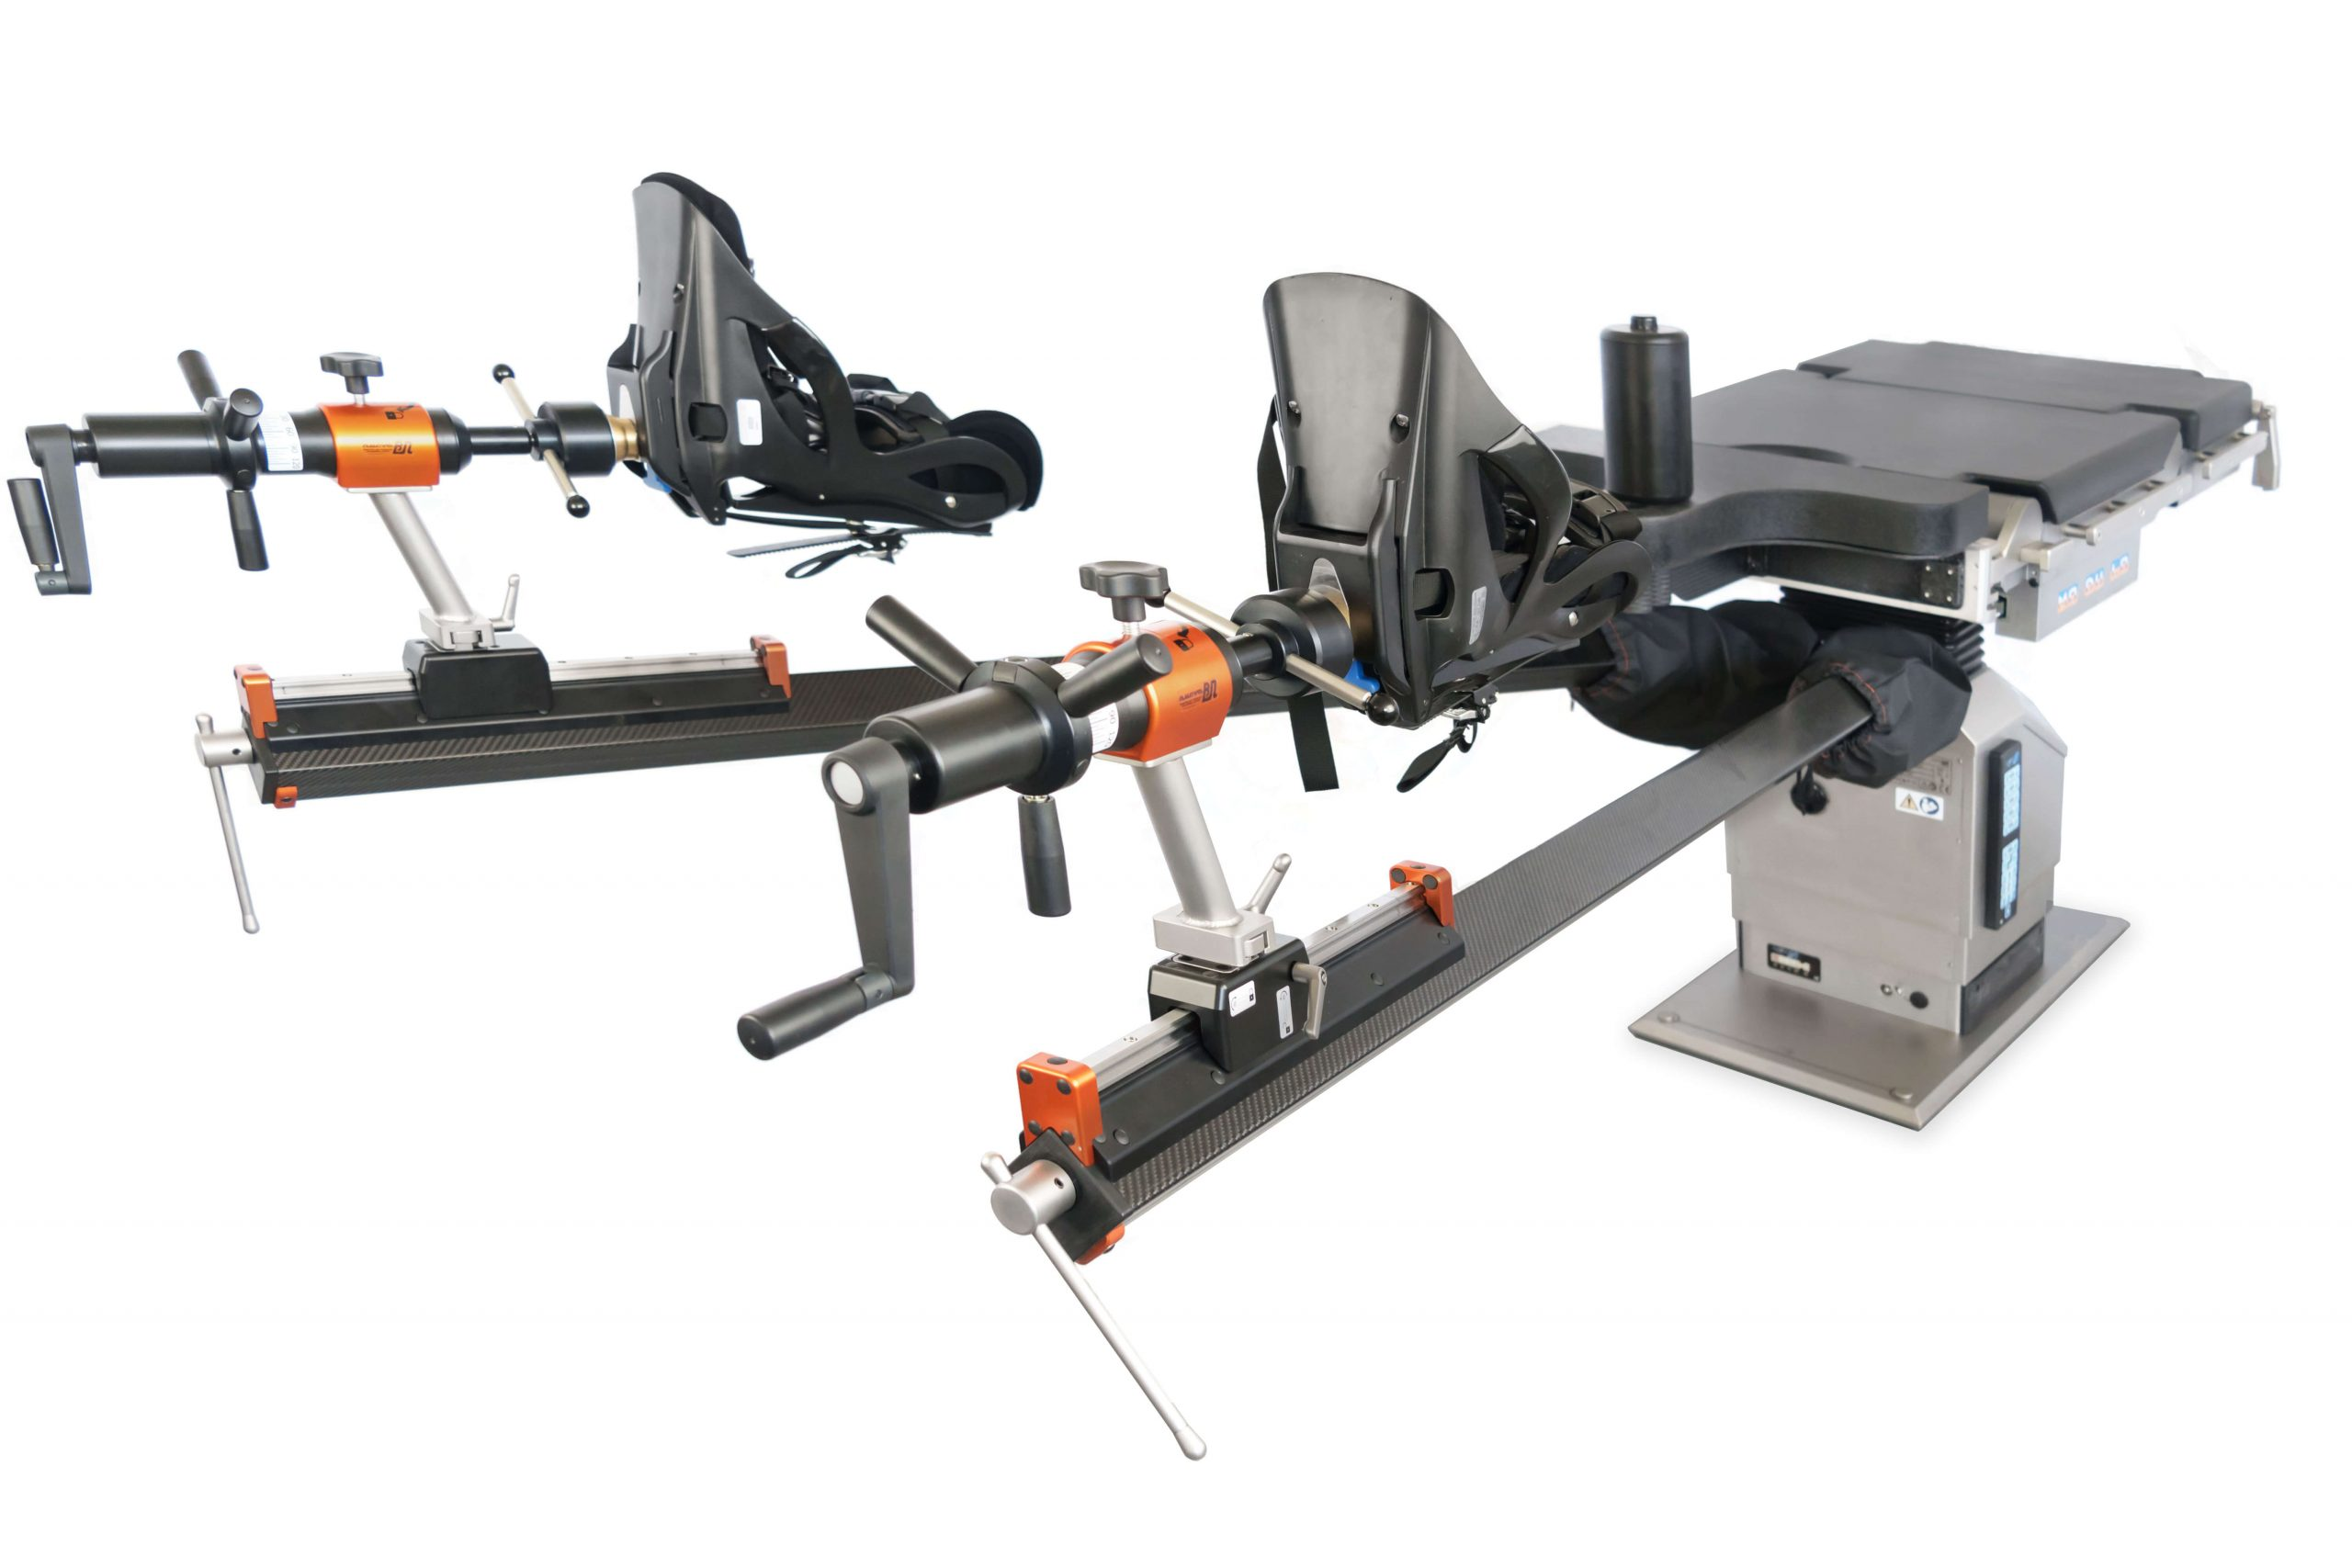 Orthopedic traction unit in carbon fiber for electromechanical and manual operating tables